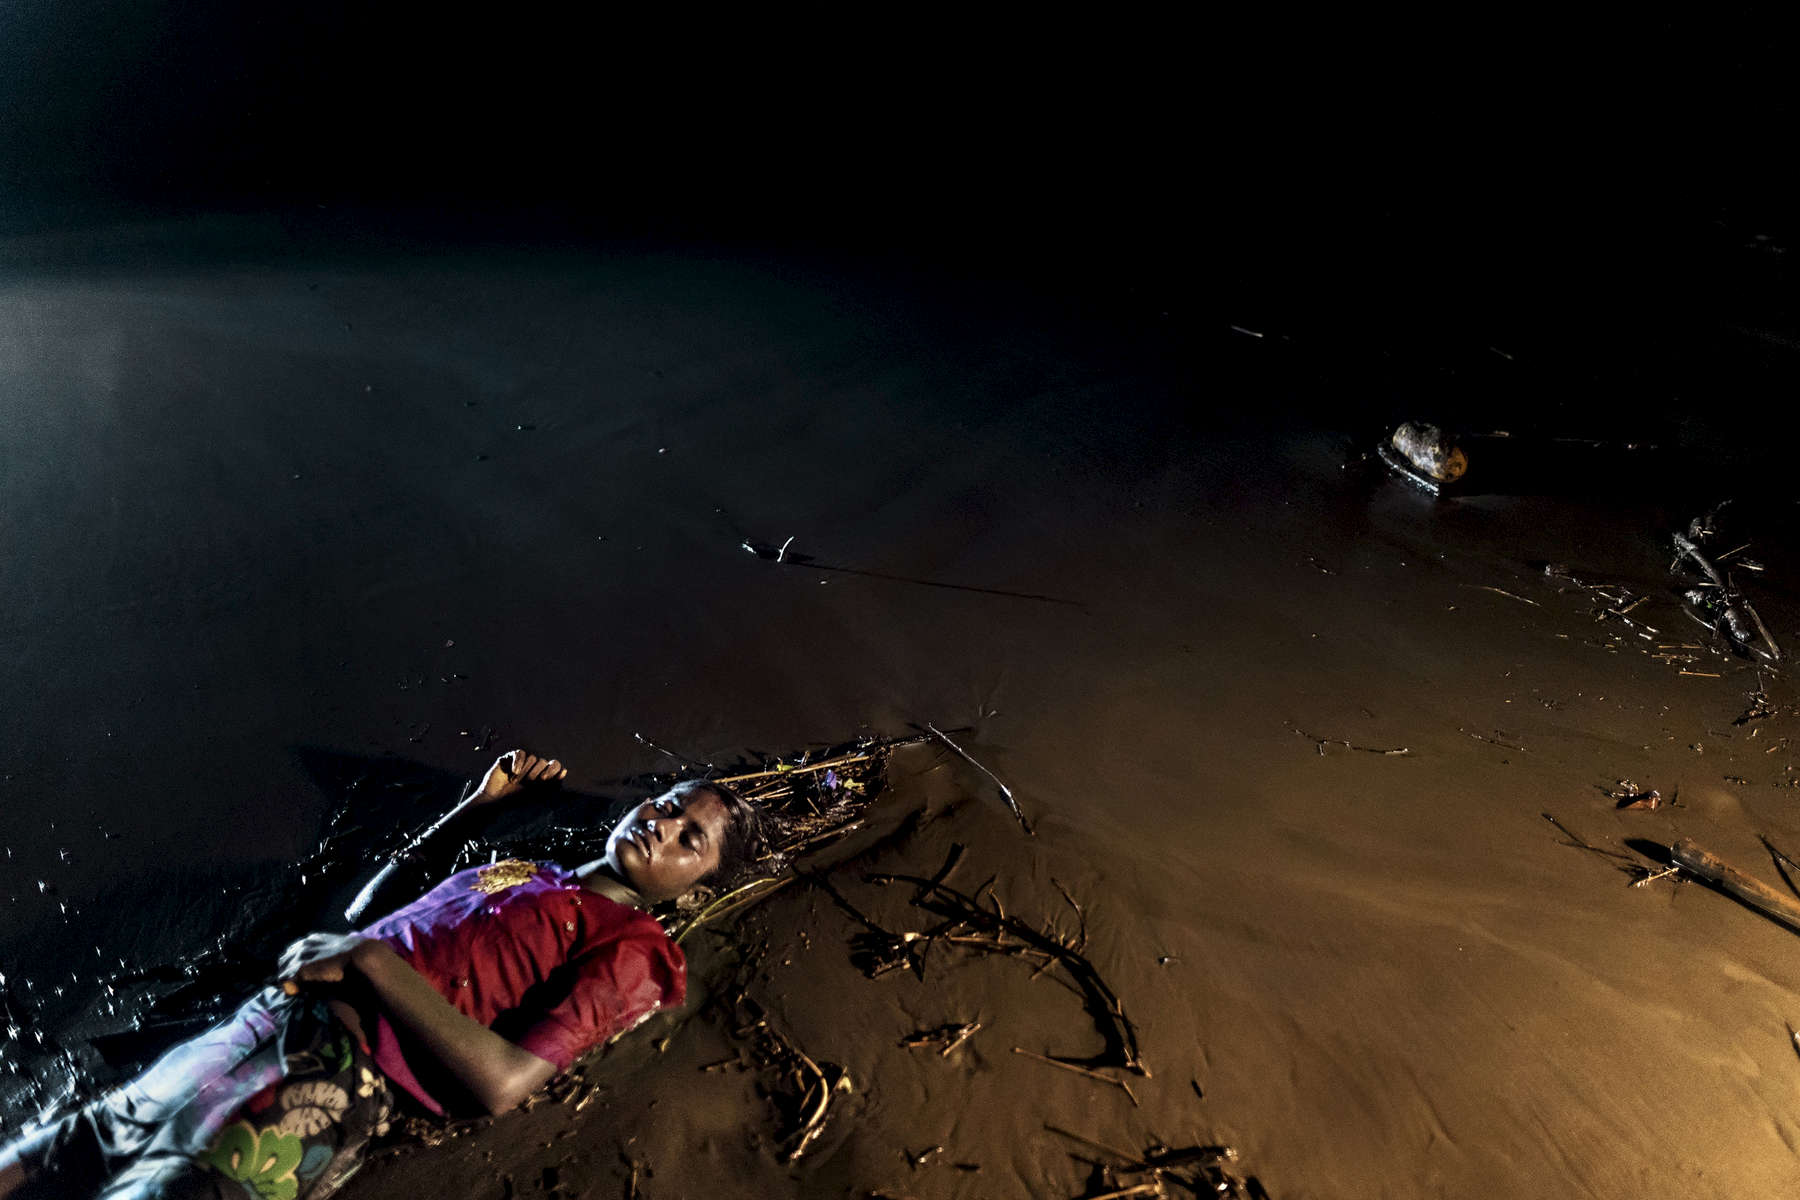 INANI BEACH, BANGLADESH - SEPTEMBER 28: The body of a Rohingya woman lays on a beach washed up after a boat sunk in rough seas off the coast of Bangladesh carrying over 100 people September 28 close to Patuwartek, Inani beach, Bangladesh. Seventeen survivors were found along with the bodies of 15 women and children. Over 655,000 Rohingya refugees have fled into Bangladesh since late August during the outbreak of violence in Rakhine state.